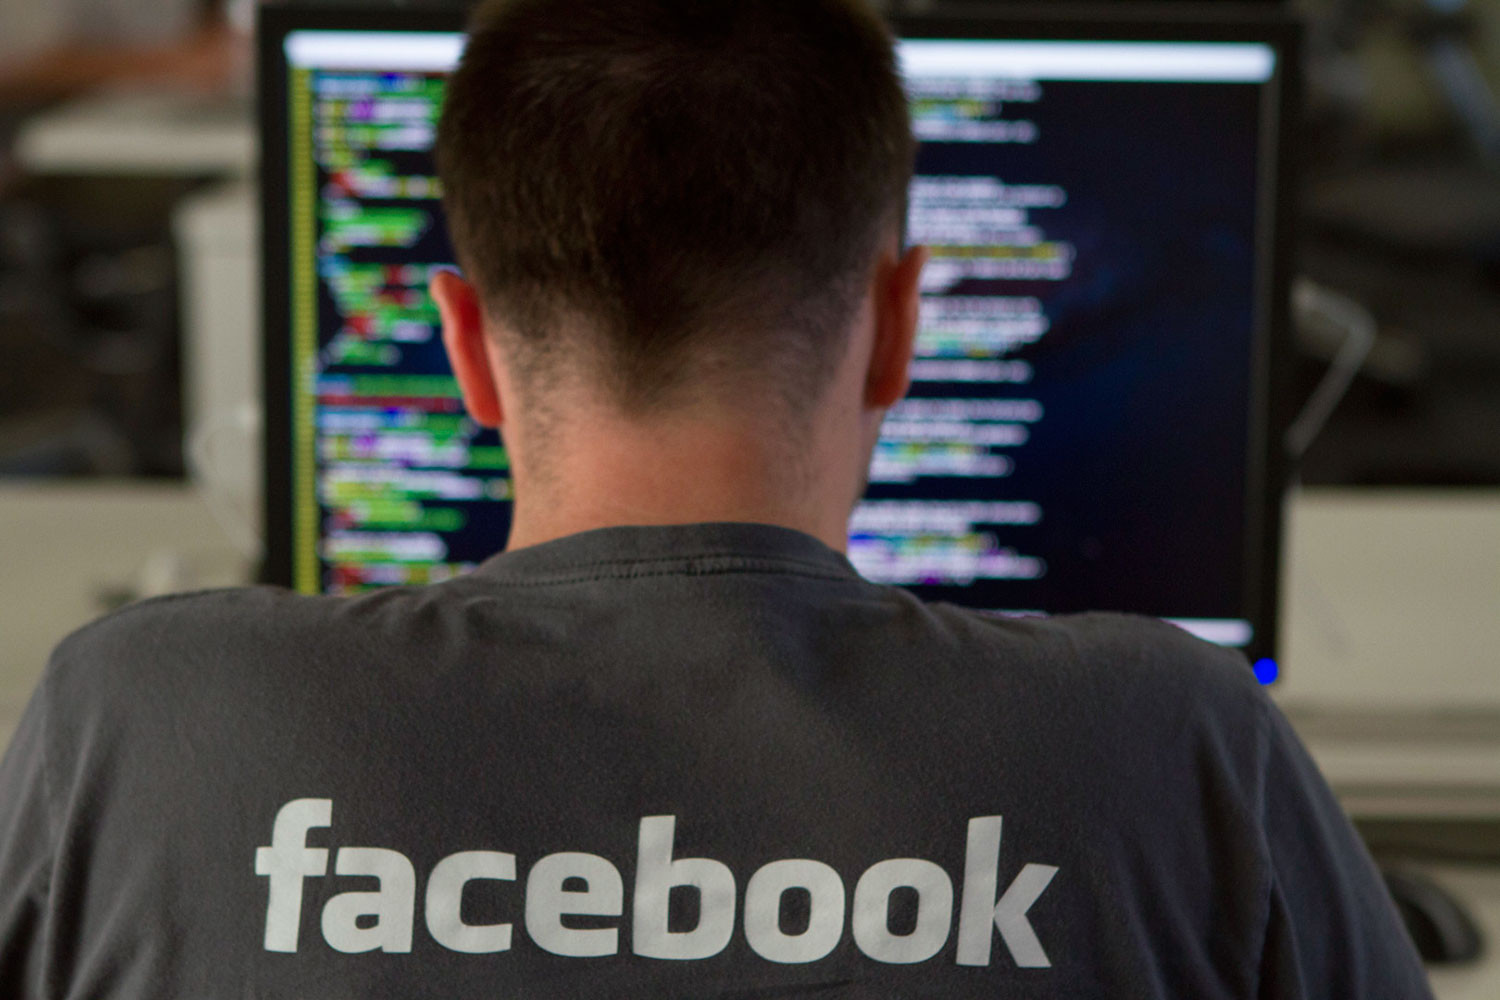 Facebook apologizes to ad clients for exaggerating video viewing times